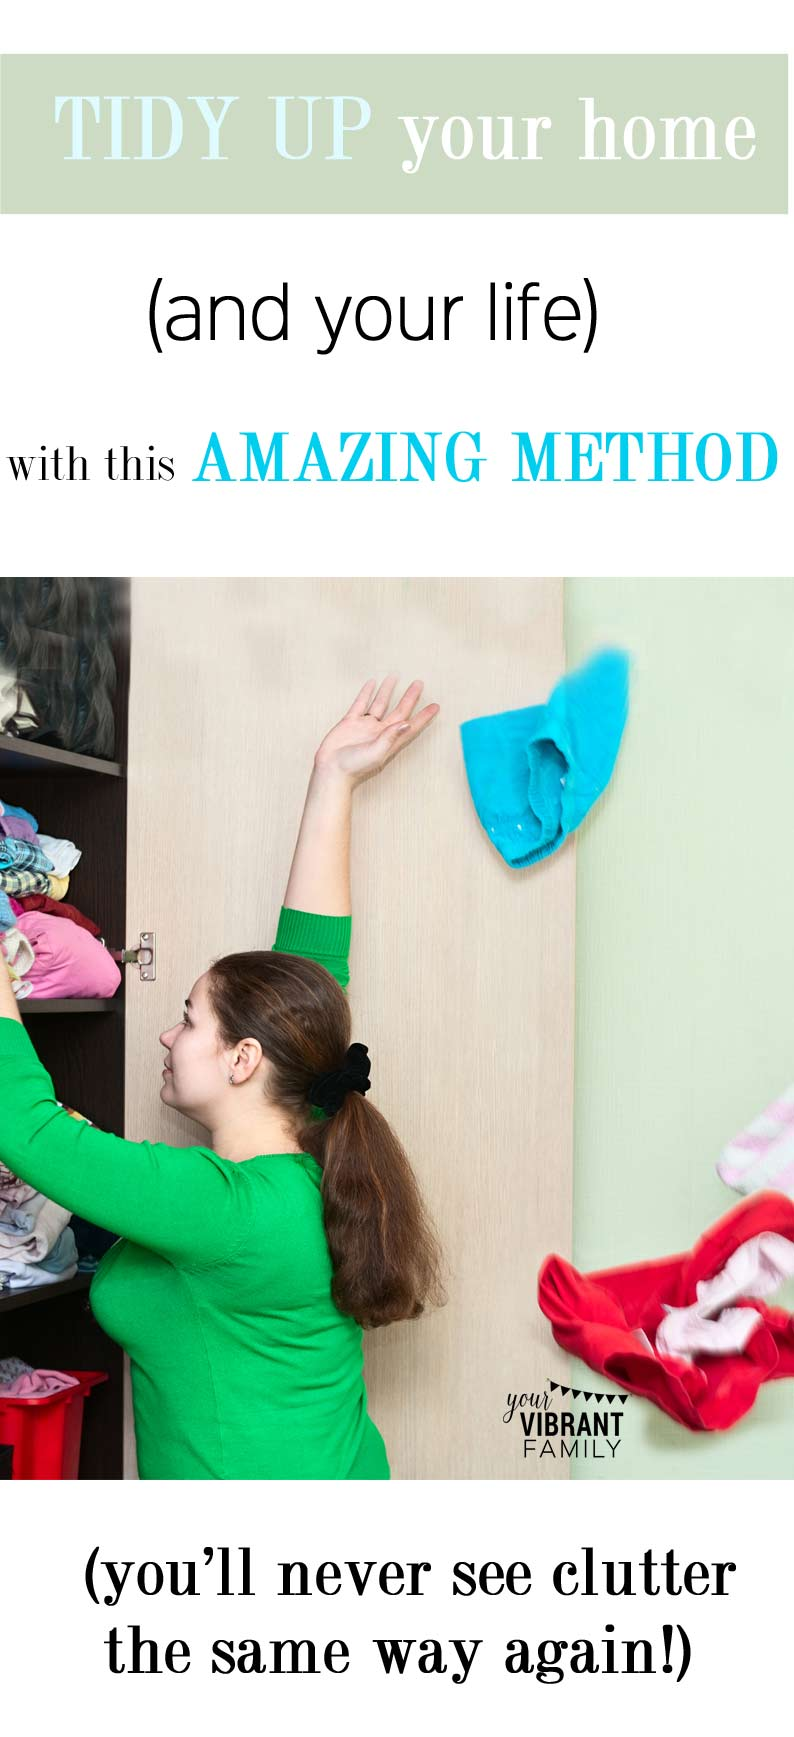 Tired of all the clutter and ready for change? This incredibly powerful organizing method not only will get your closets organized but will restore your spirt and make over your life. You'll wonder how you ever lived without this amazing tidying up method!